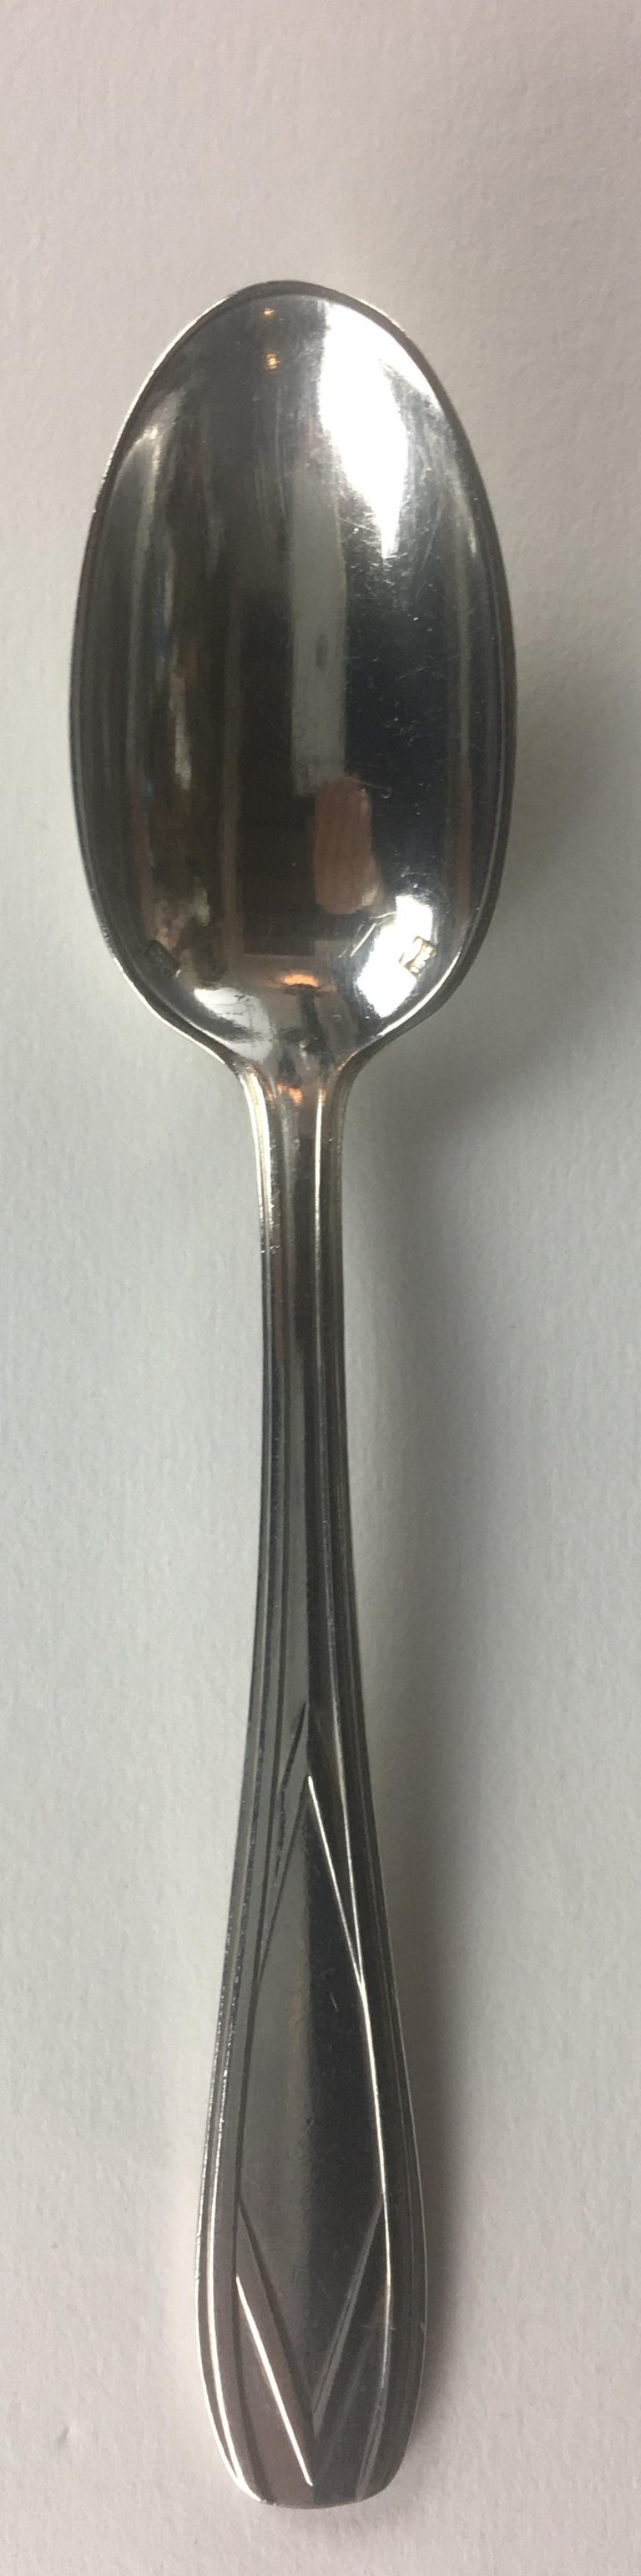 Twelve piece silver plated tea - coffee spoons set. Marked, this mark was found in many similar patterned items from the early 1900s-1930s. Sold in original box with dividers for each item, box marked Cholet. Patten unknown.   No monograms, elegant